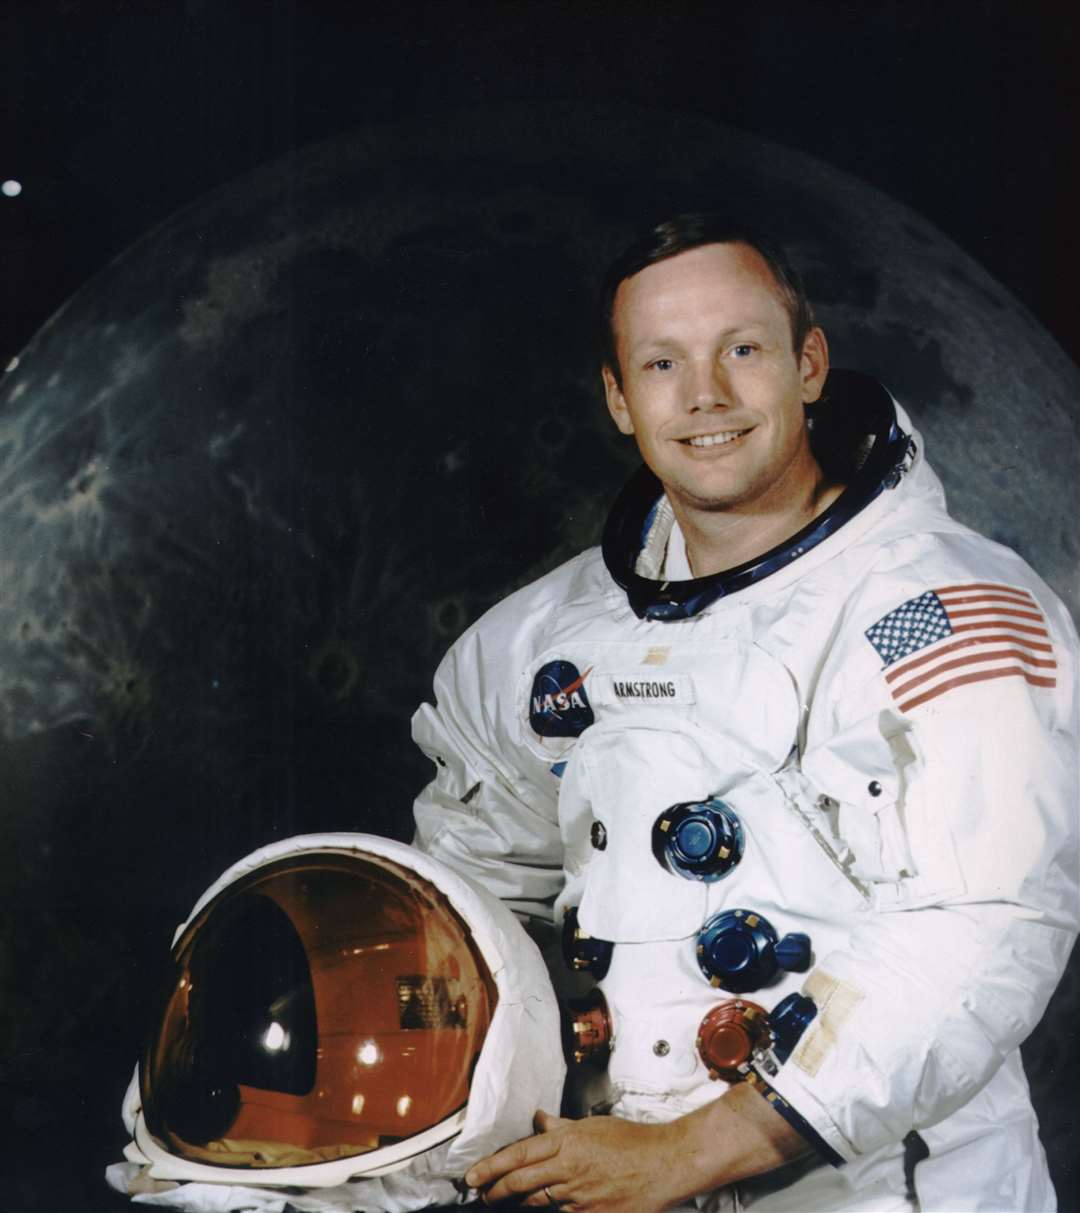 Neil Armstrong, donned in his space suit, poses for his official Apollo 11 portrait. Armstrong began his flight career as a naval aviator. He flew 78 combat missions during the Korean War. Armstrong joined the NASA predecessor, NACA (National Advisory Committee for Aeronautics), as a research pilot at the Lewis Laboratory in Cleveland and later transferred to the NACA High Speed Flight Station at Edwards AFB, California. He was a project pilot on many pioneering high speed aircraft, including the 4,000 mph X-15. He has flown over 200 different models of aircraft, including jets, rockets, helicopters, and gliders. In 1962, Armstrong was transferred to astronaut status. He served as command pilot for the Gemini 8 mission, launched March 16, 1966, and performed the first successful docking of two vehicles in space. In 1969, Armstrong was commander of Apollo 11, the first manned lunar landing mission, and gained the distinction of being the first man to land a craft on the Moon and the first man to step on its surface. Armstrong subsequently held the position of Deputy Associate Administrator for Aeronautics, NASA Headquarters Office of Advanced Research and Technology, from 1970 to 1971. He resigned from NASA in 1971. Picture: NASA (14042147)